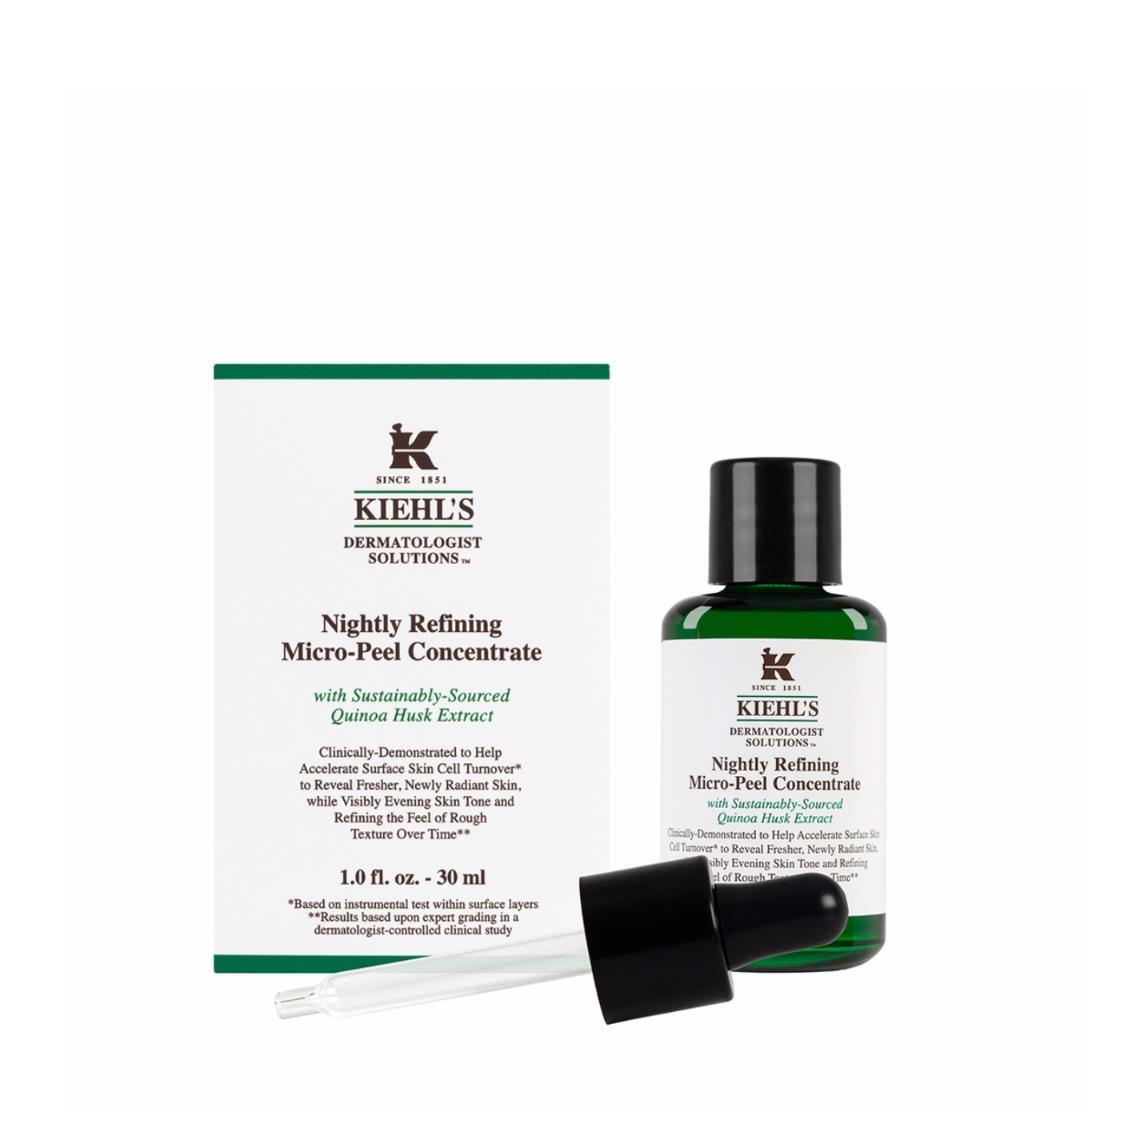 Kiehls Since 1851 Dermatologist Solutions Nightly Refining Micro-Peel Concentrate 30ml